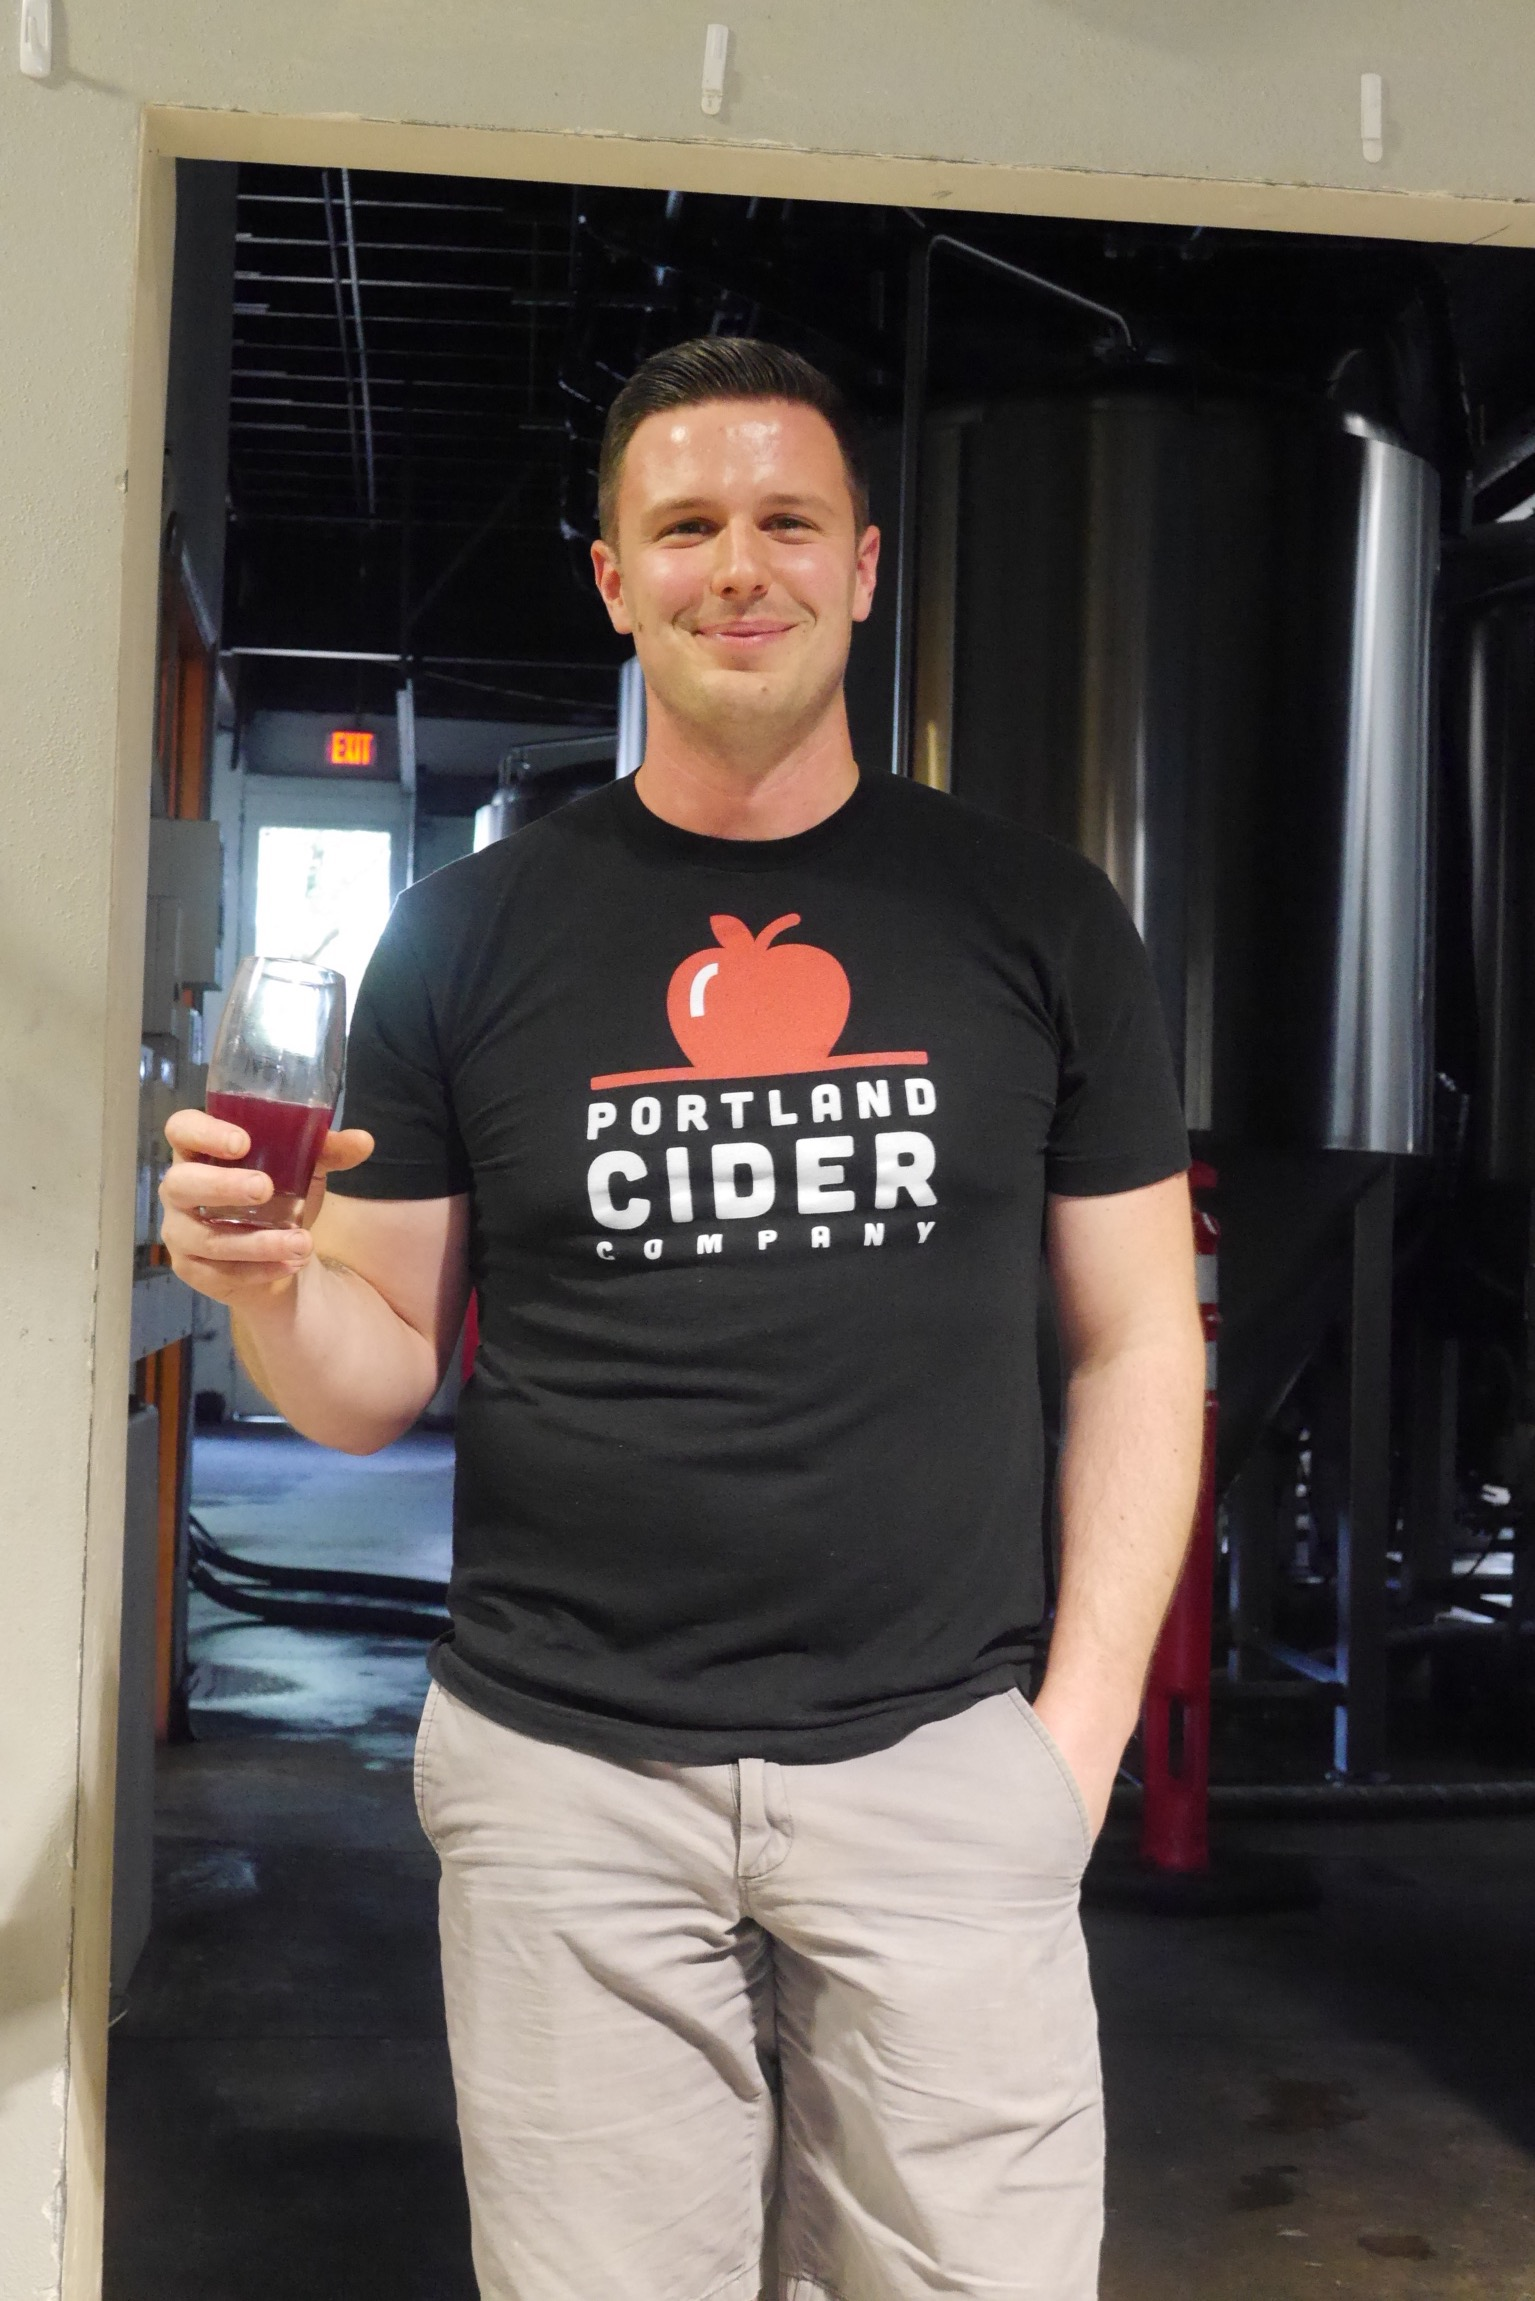 Deron of Portland Cider Co. talking about its Boysenberry Hop cider at the 2016 Portland Fruit Beer Festival media preview. (photo by Cat Stelzer)